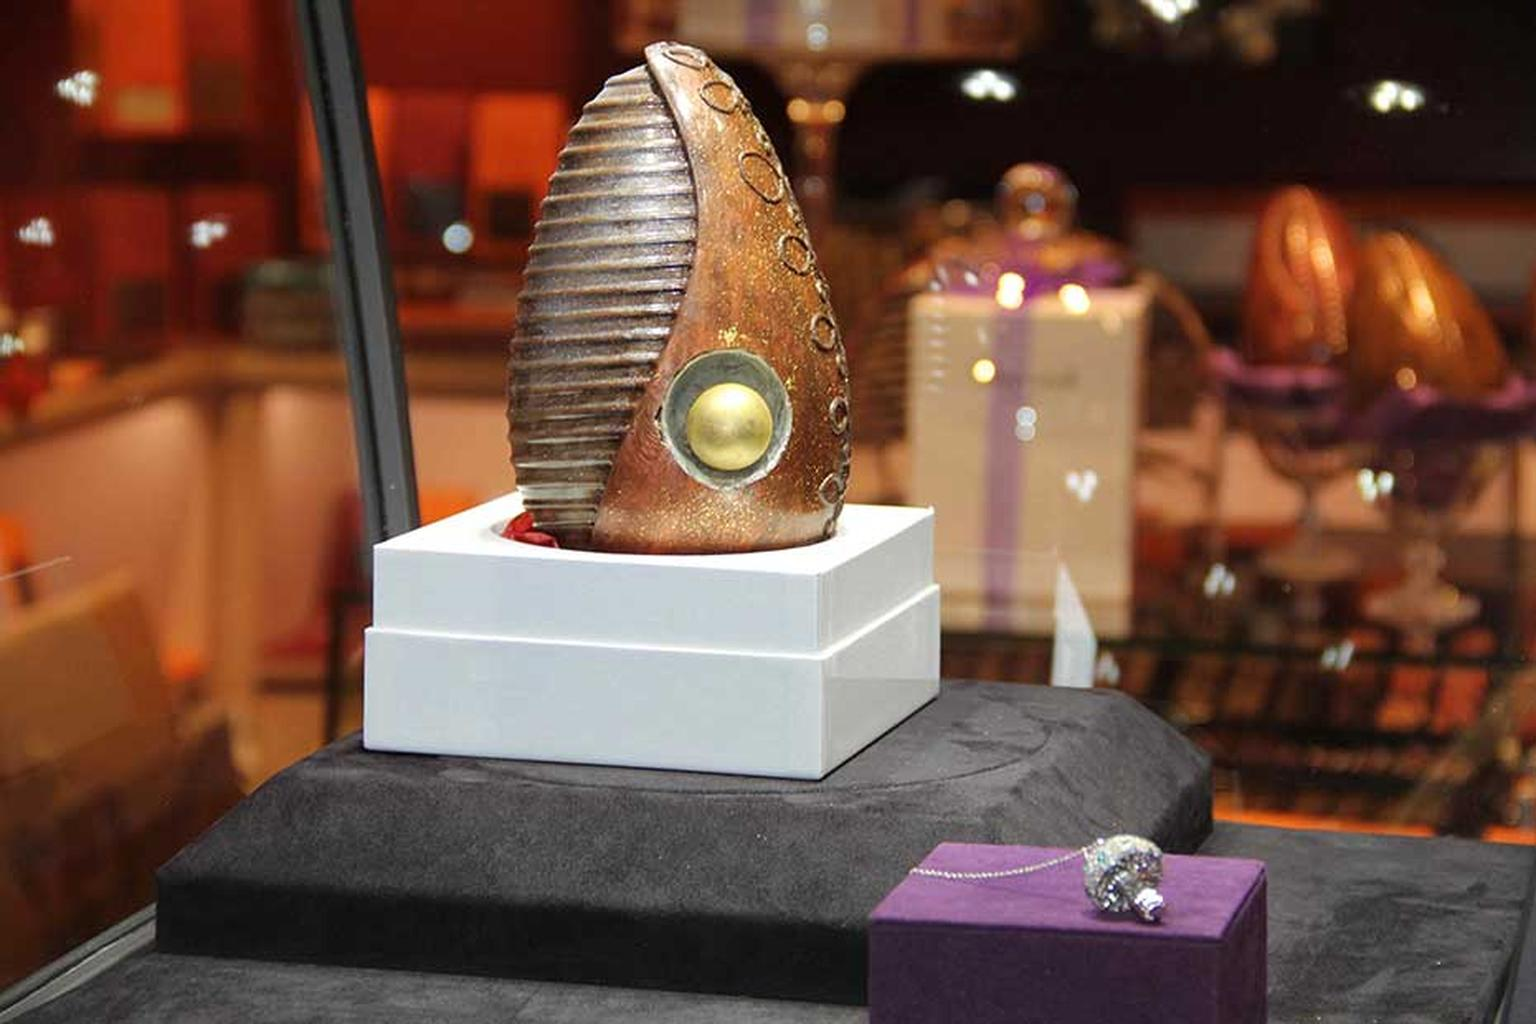 The inspiration behind the Shawish Easter Surprise at Harrods was the Shawish Diamonds Surprise, launched in 2013. Containing the Dandy Emerald Magic Mushroom pendant, the world's most valuable chocolate egg will soon be featured in the Guinness Book of W